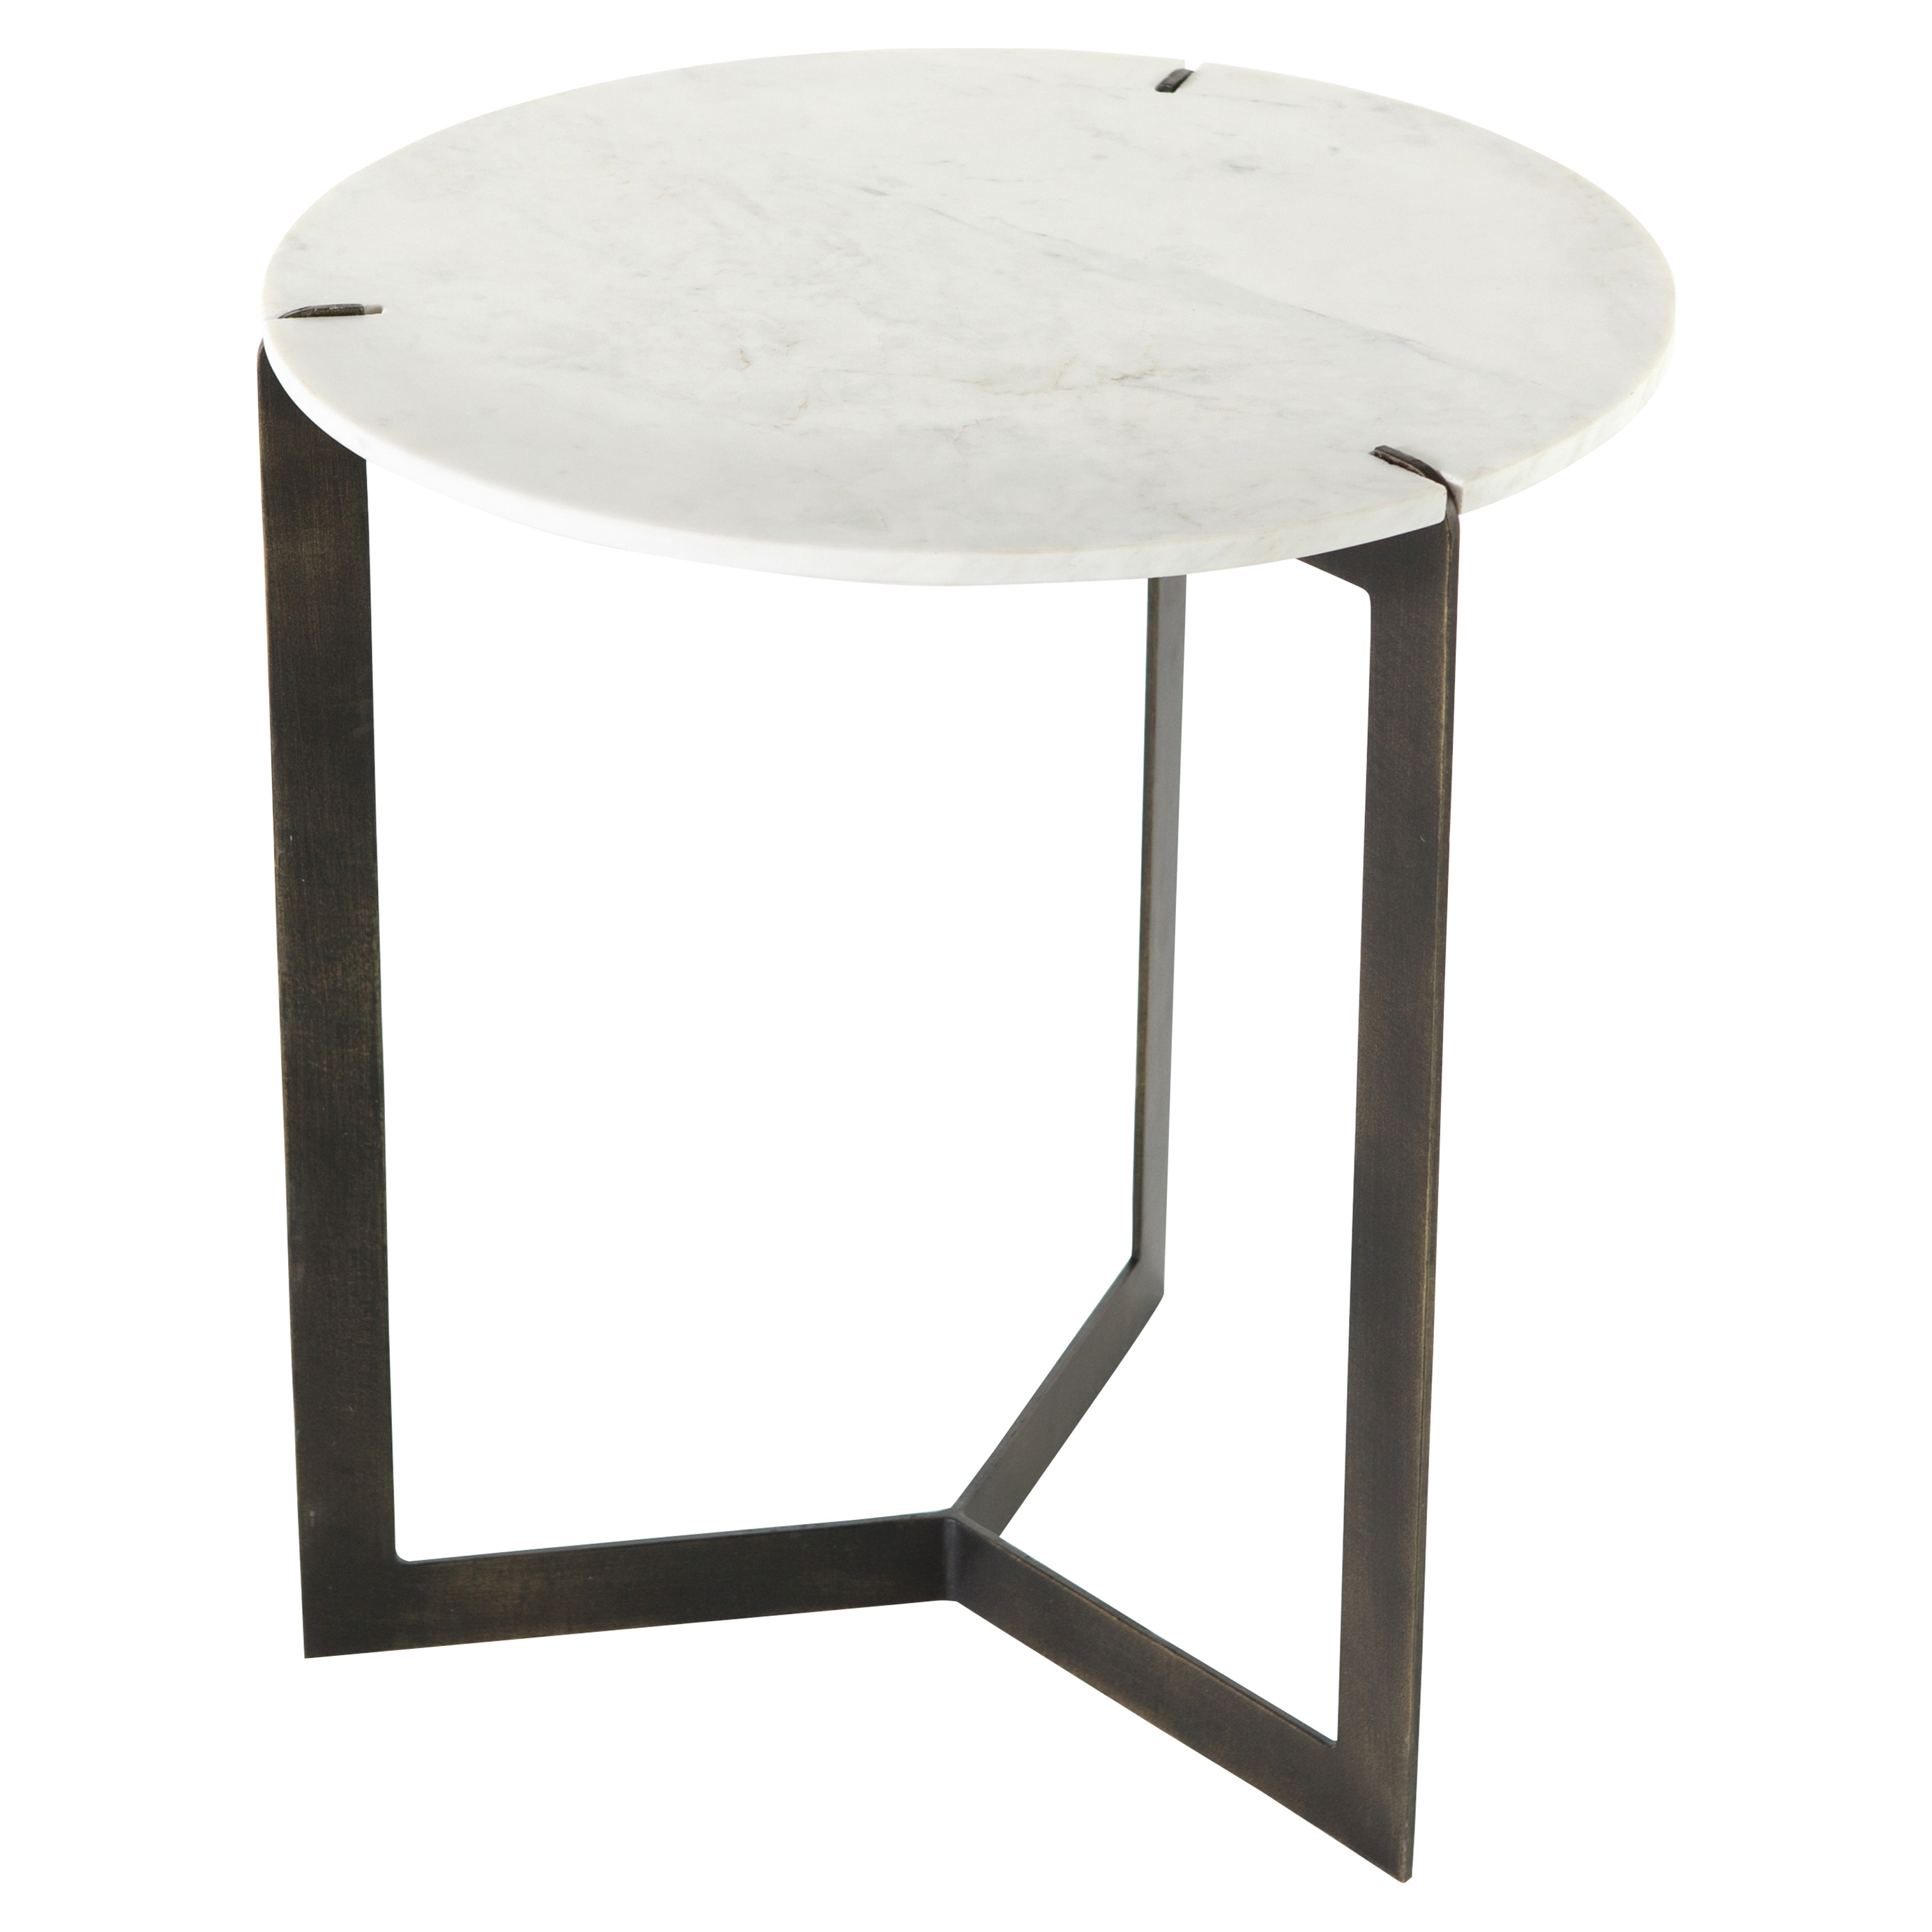 Designer Side & End Tables - Eclectic Side & End Tables | Kathy Kuo Home intended for Aged Iron Cube Tables (Image 14 of 30)